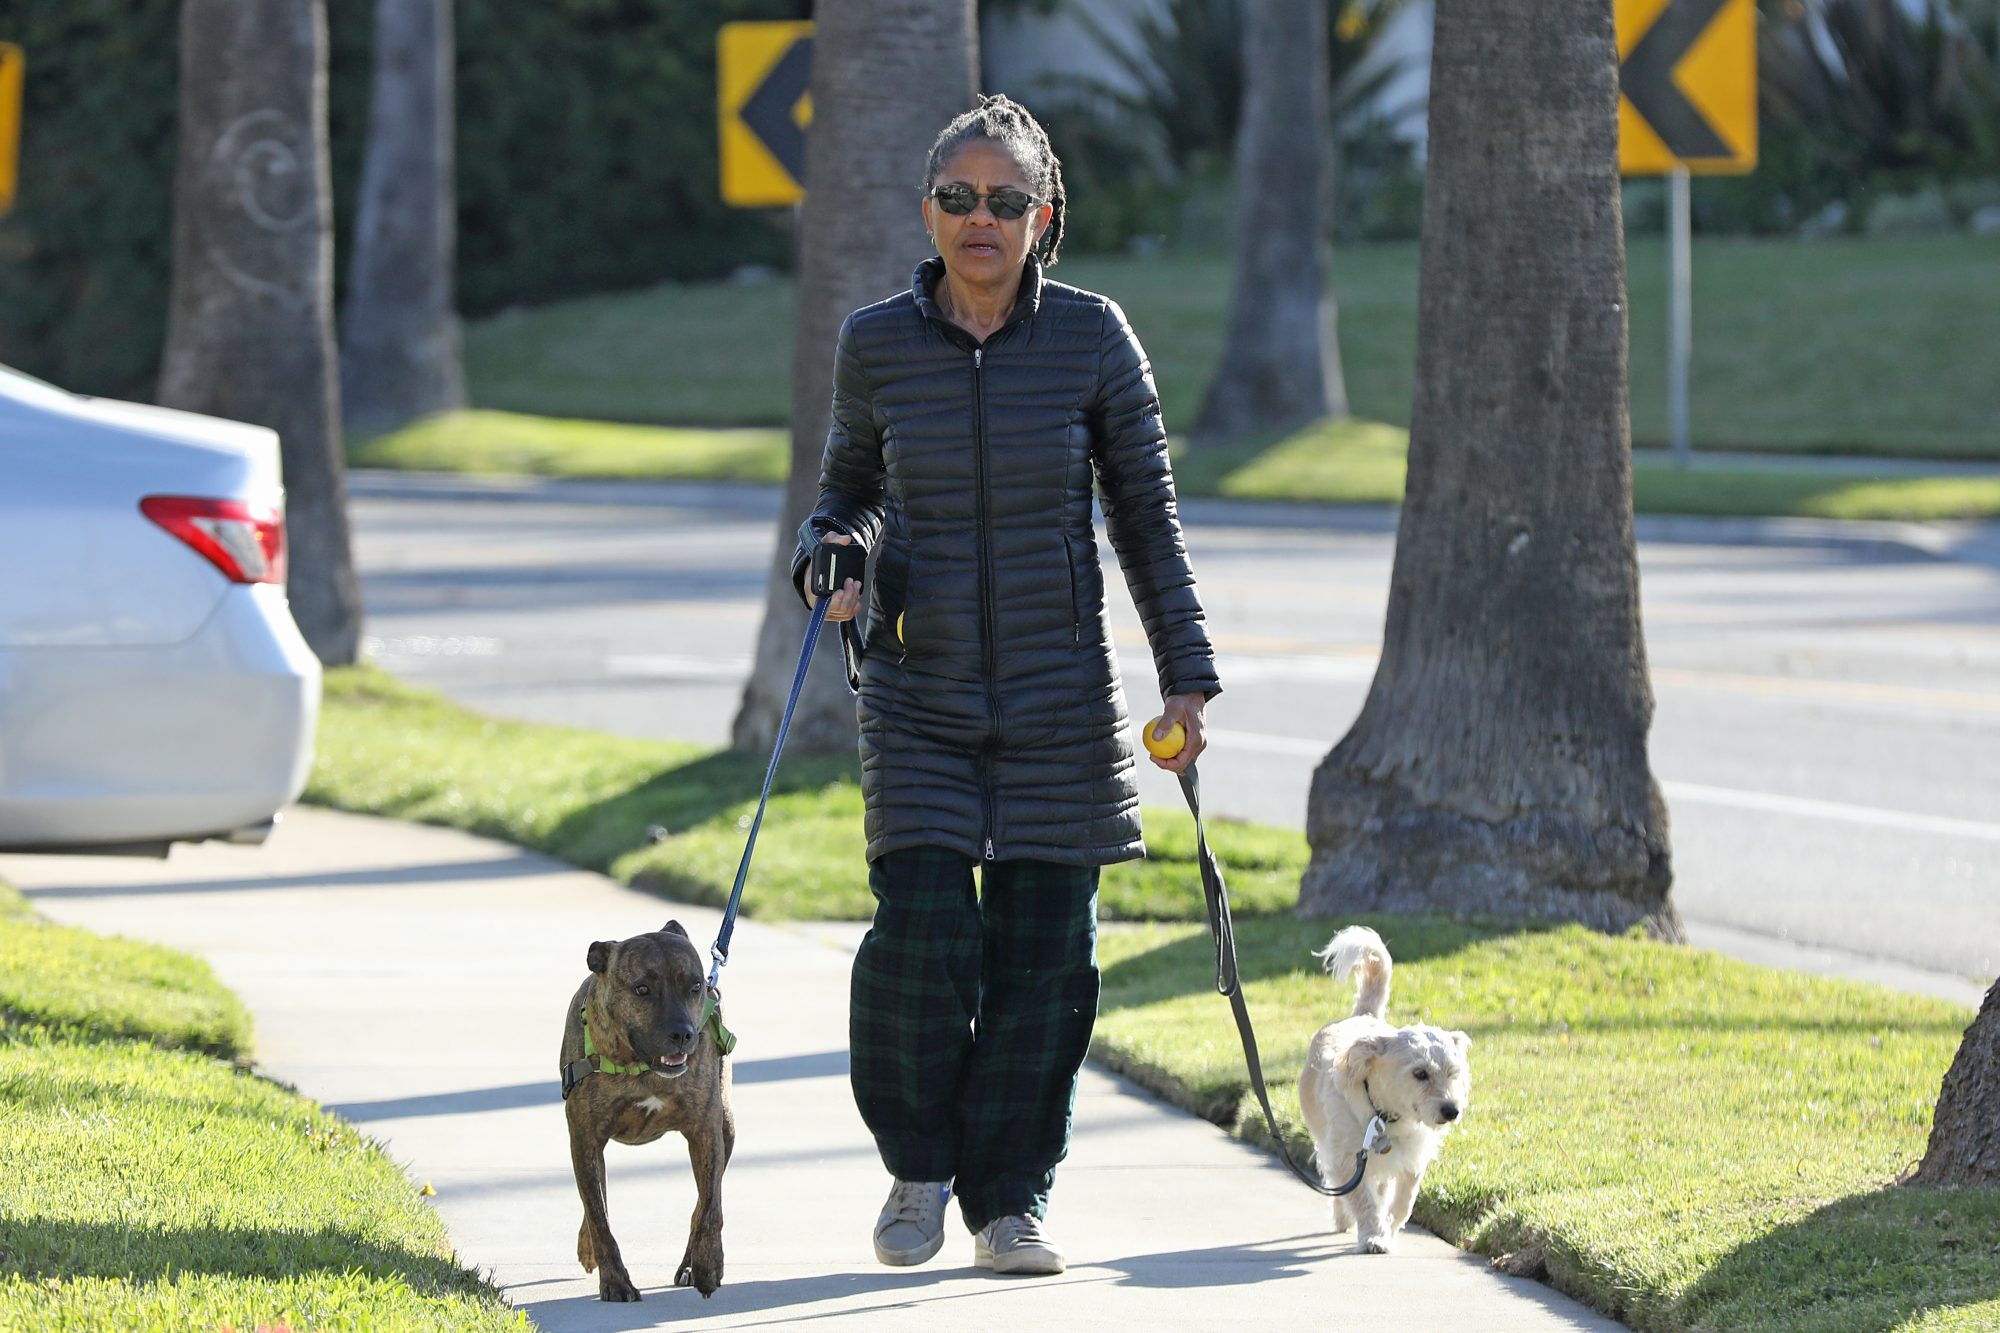 Meghan Markle's mother Doria Ragland is seen leaving isolation to walk her two dogs in her neighborhood after the news broke that her daughter, son-in-law Prince Harry, and their son Archie have relocated from Canada to LA. The social worker and yoga teacher wore a gray coat, flannel trousers and sneakers for the outing as she exercised social distancing amid the global pandemic.